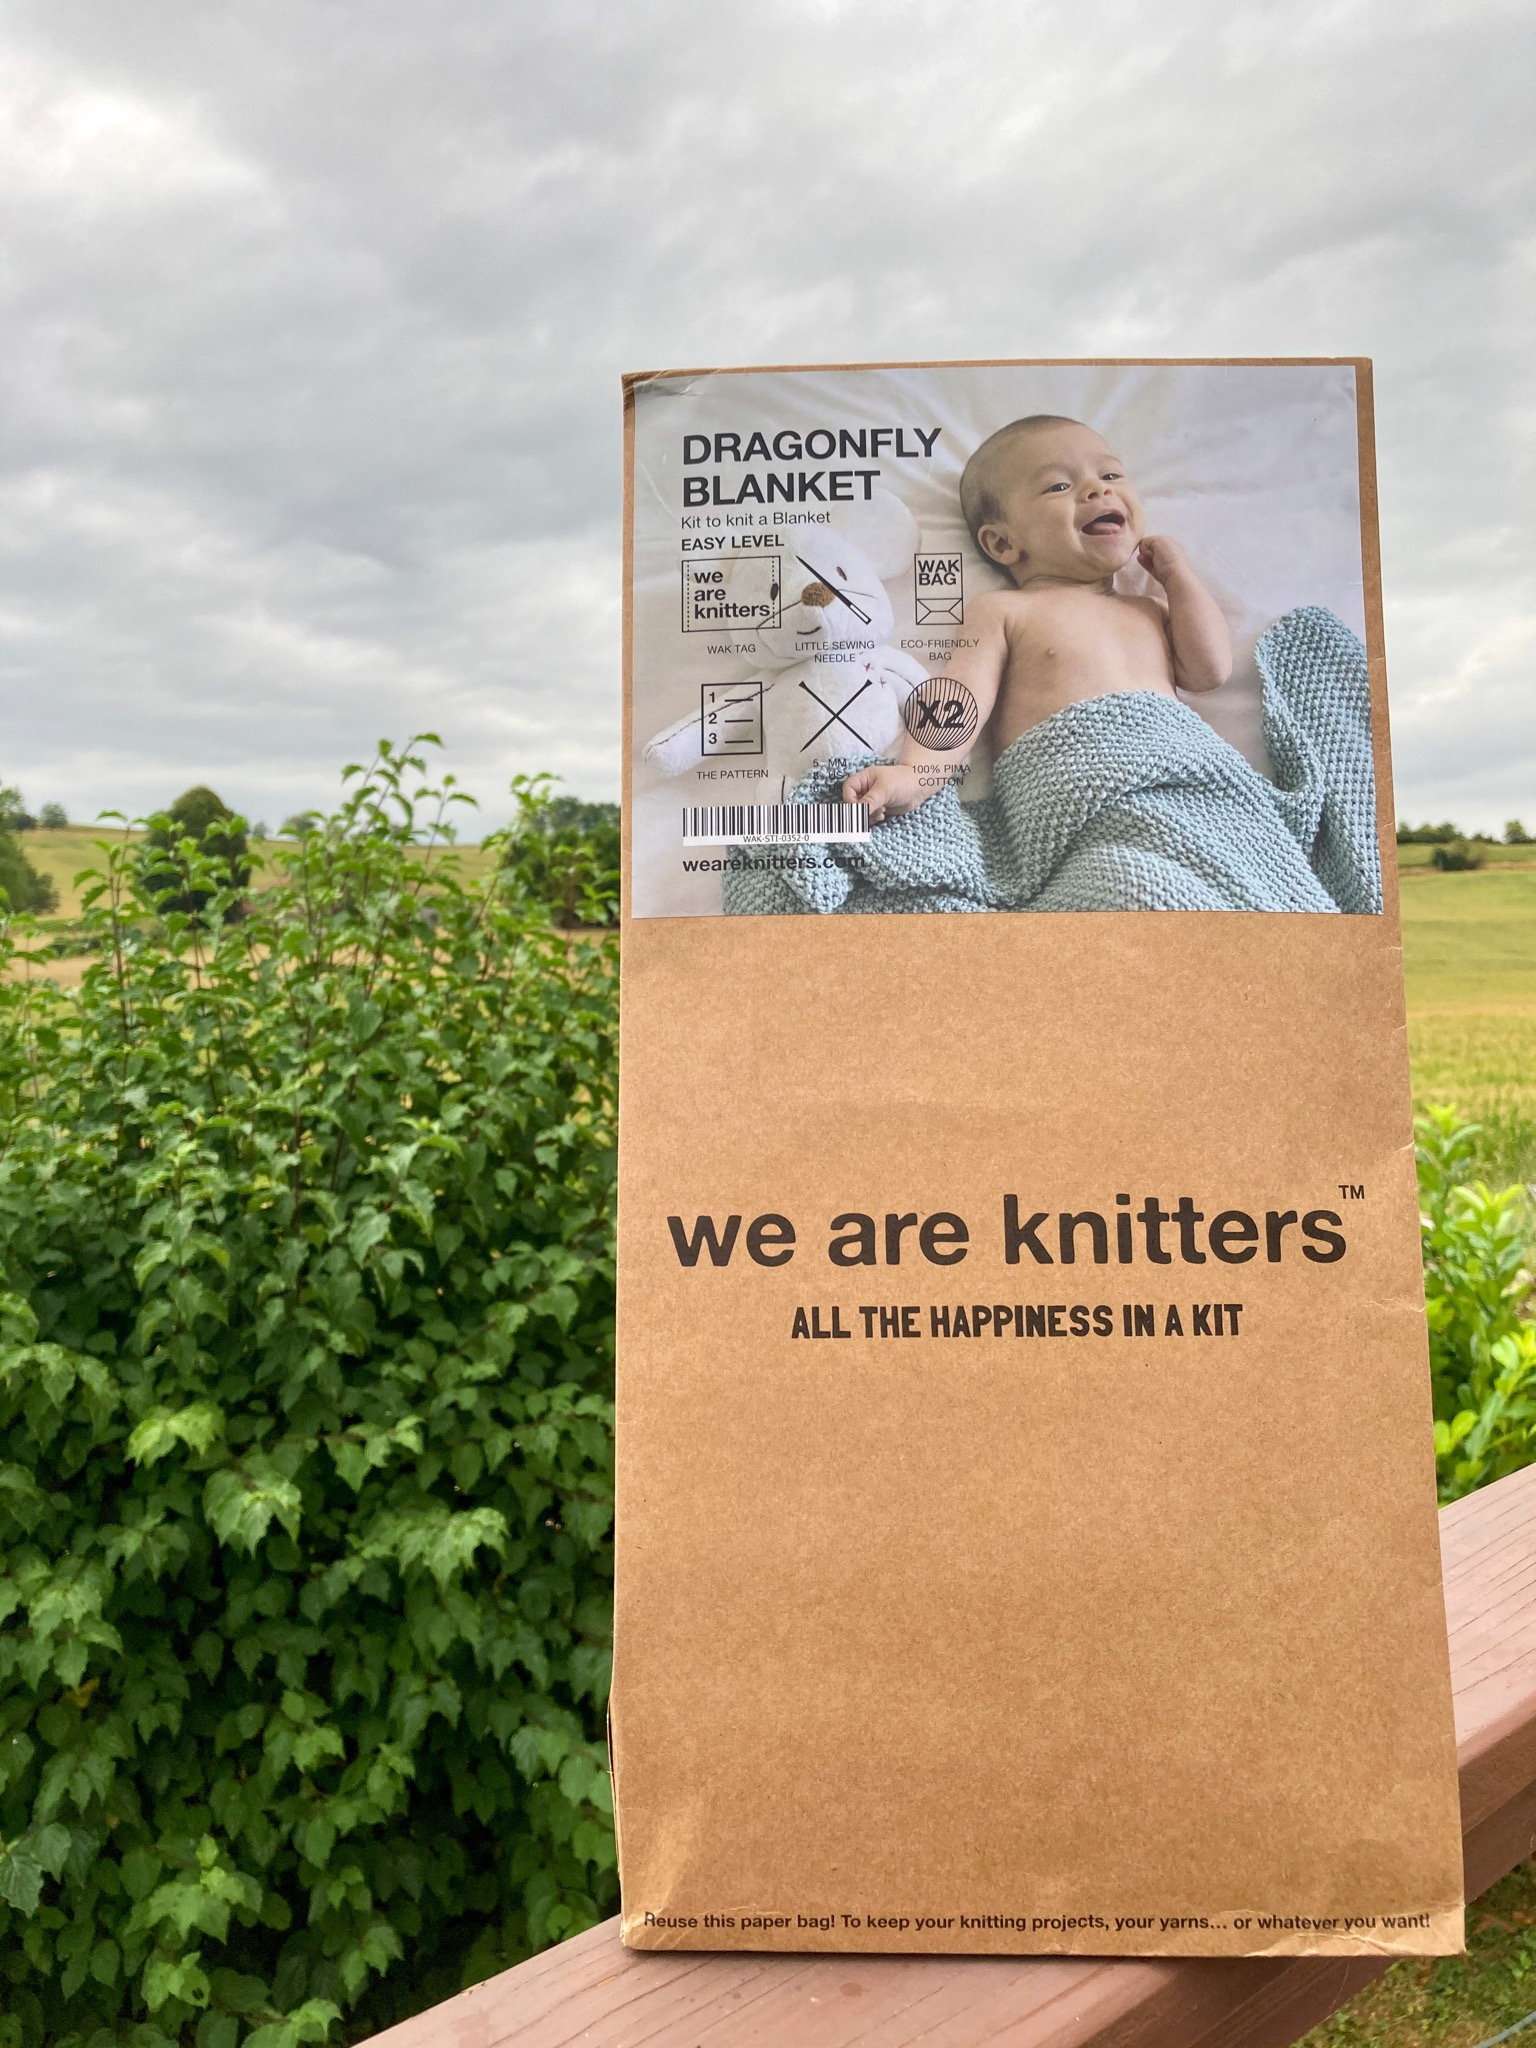 We are knitters dragonfly blanket kit in a brown paper bag